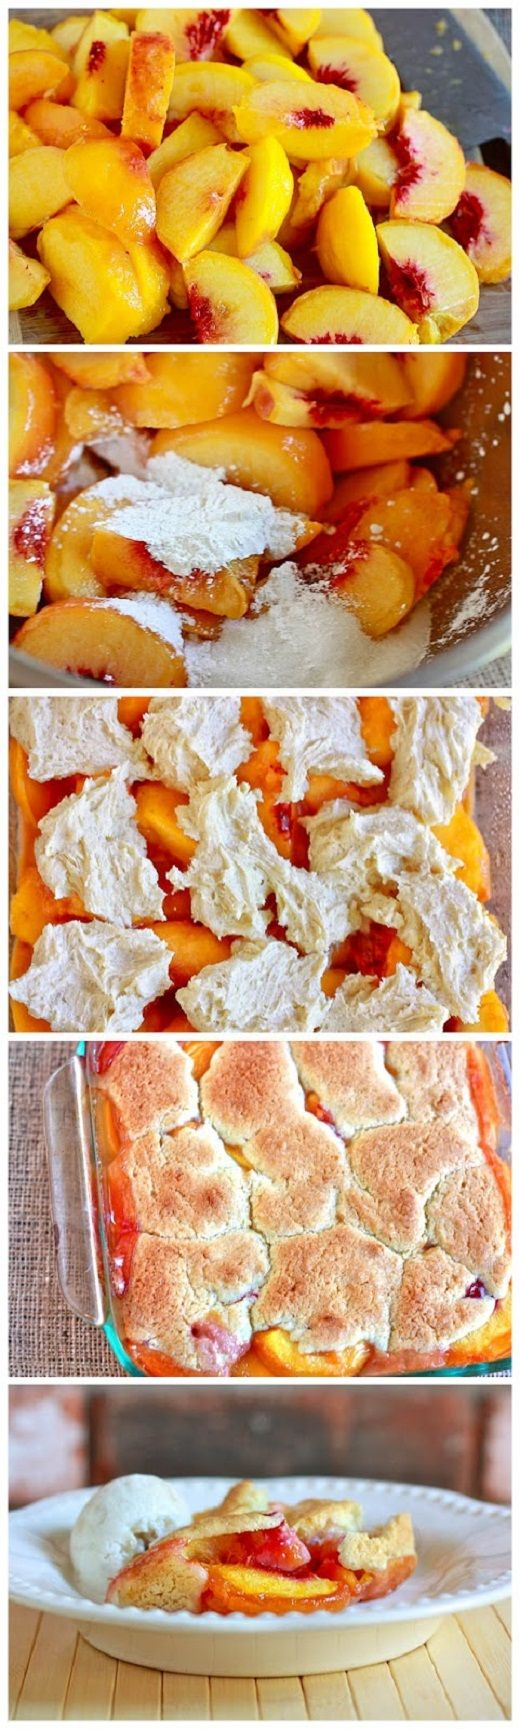 The Yummiest Peach Cobbler Recipe